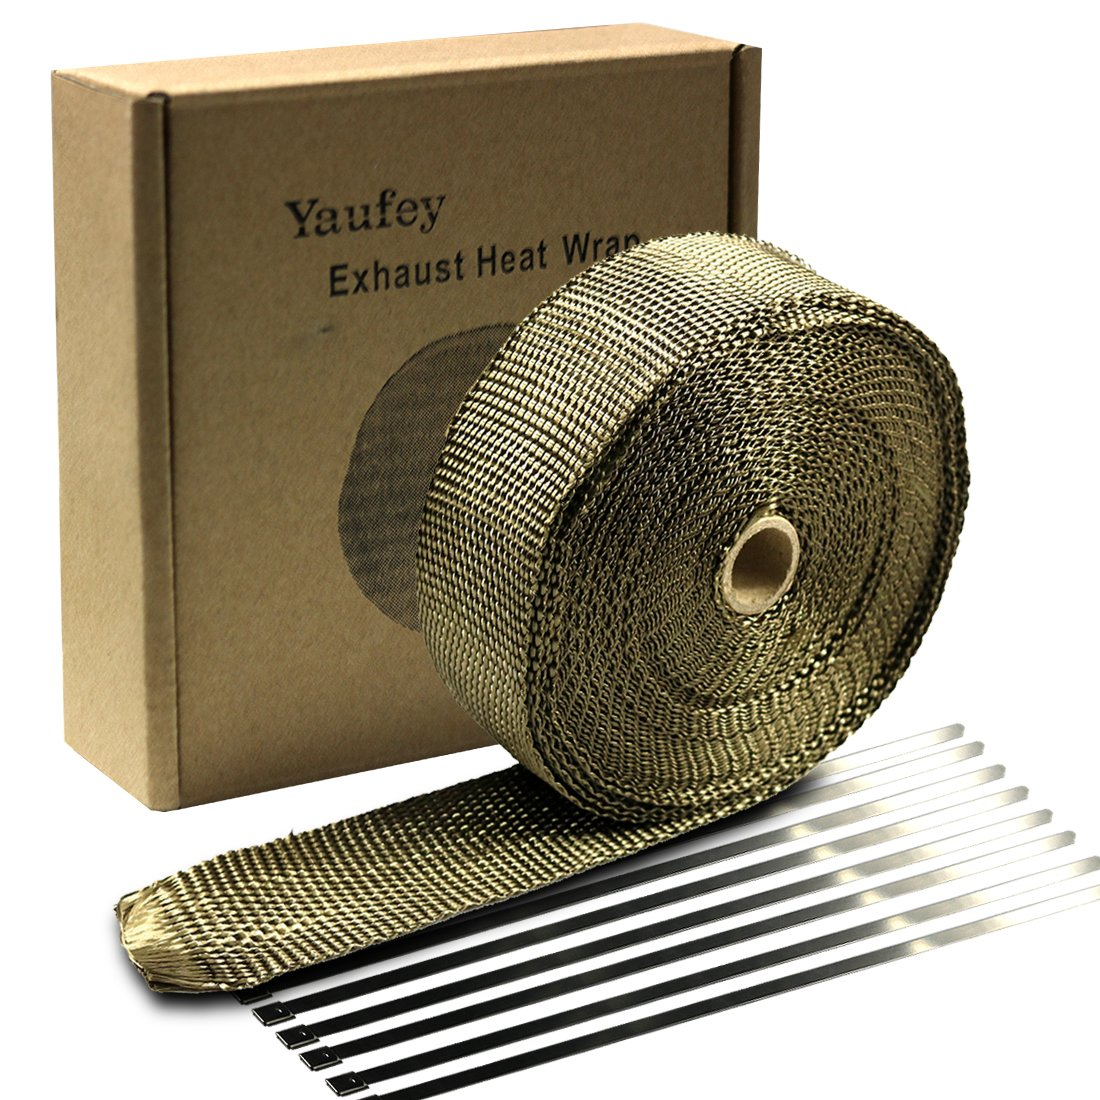 Yaufey Motorcycle Exhaust Wrap, 2'' x 50 Ft Exhaust Header Wrap Tape Header Glass Fiber Wrap Kit for Automotive Motorcycle with 8 Stainless Ties (Titanium)